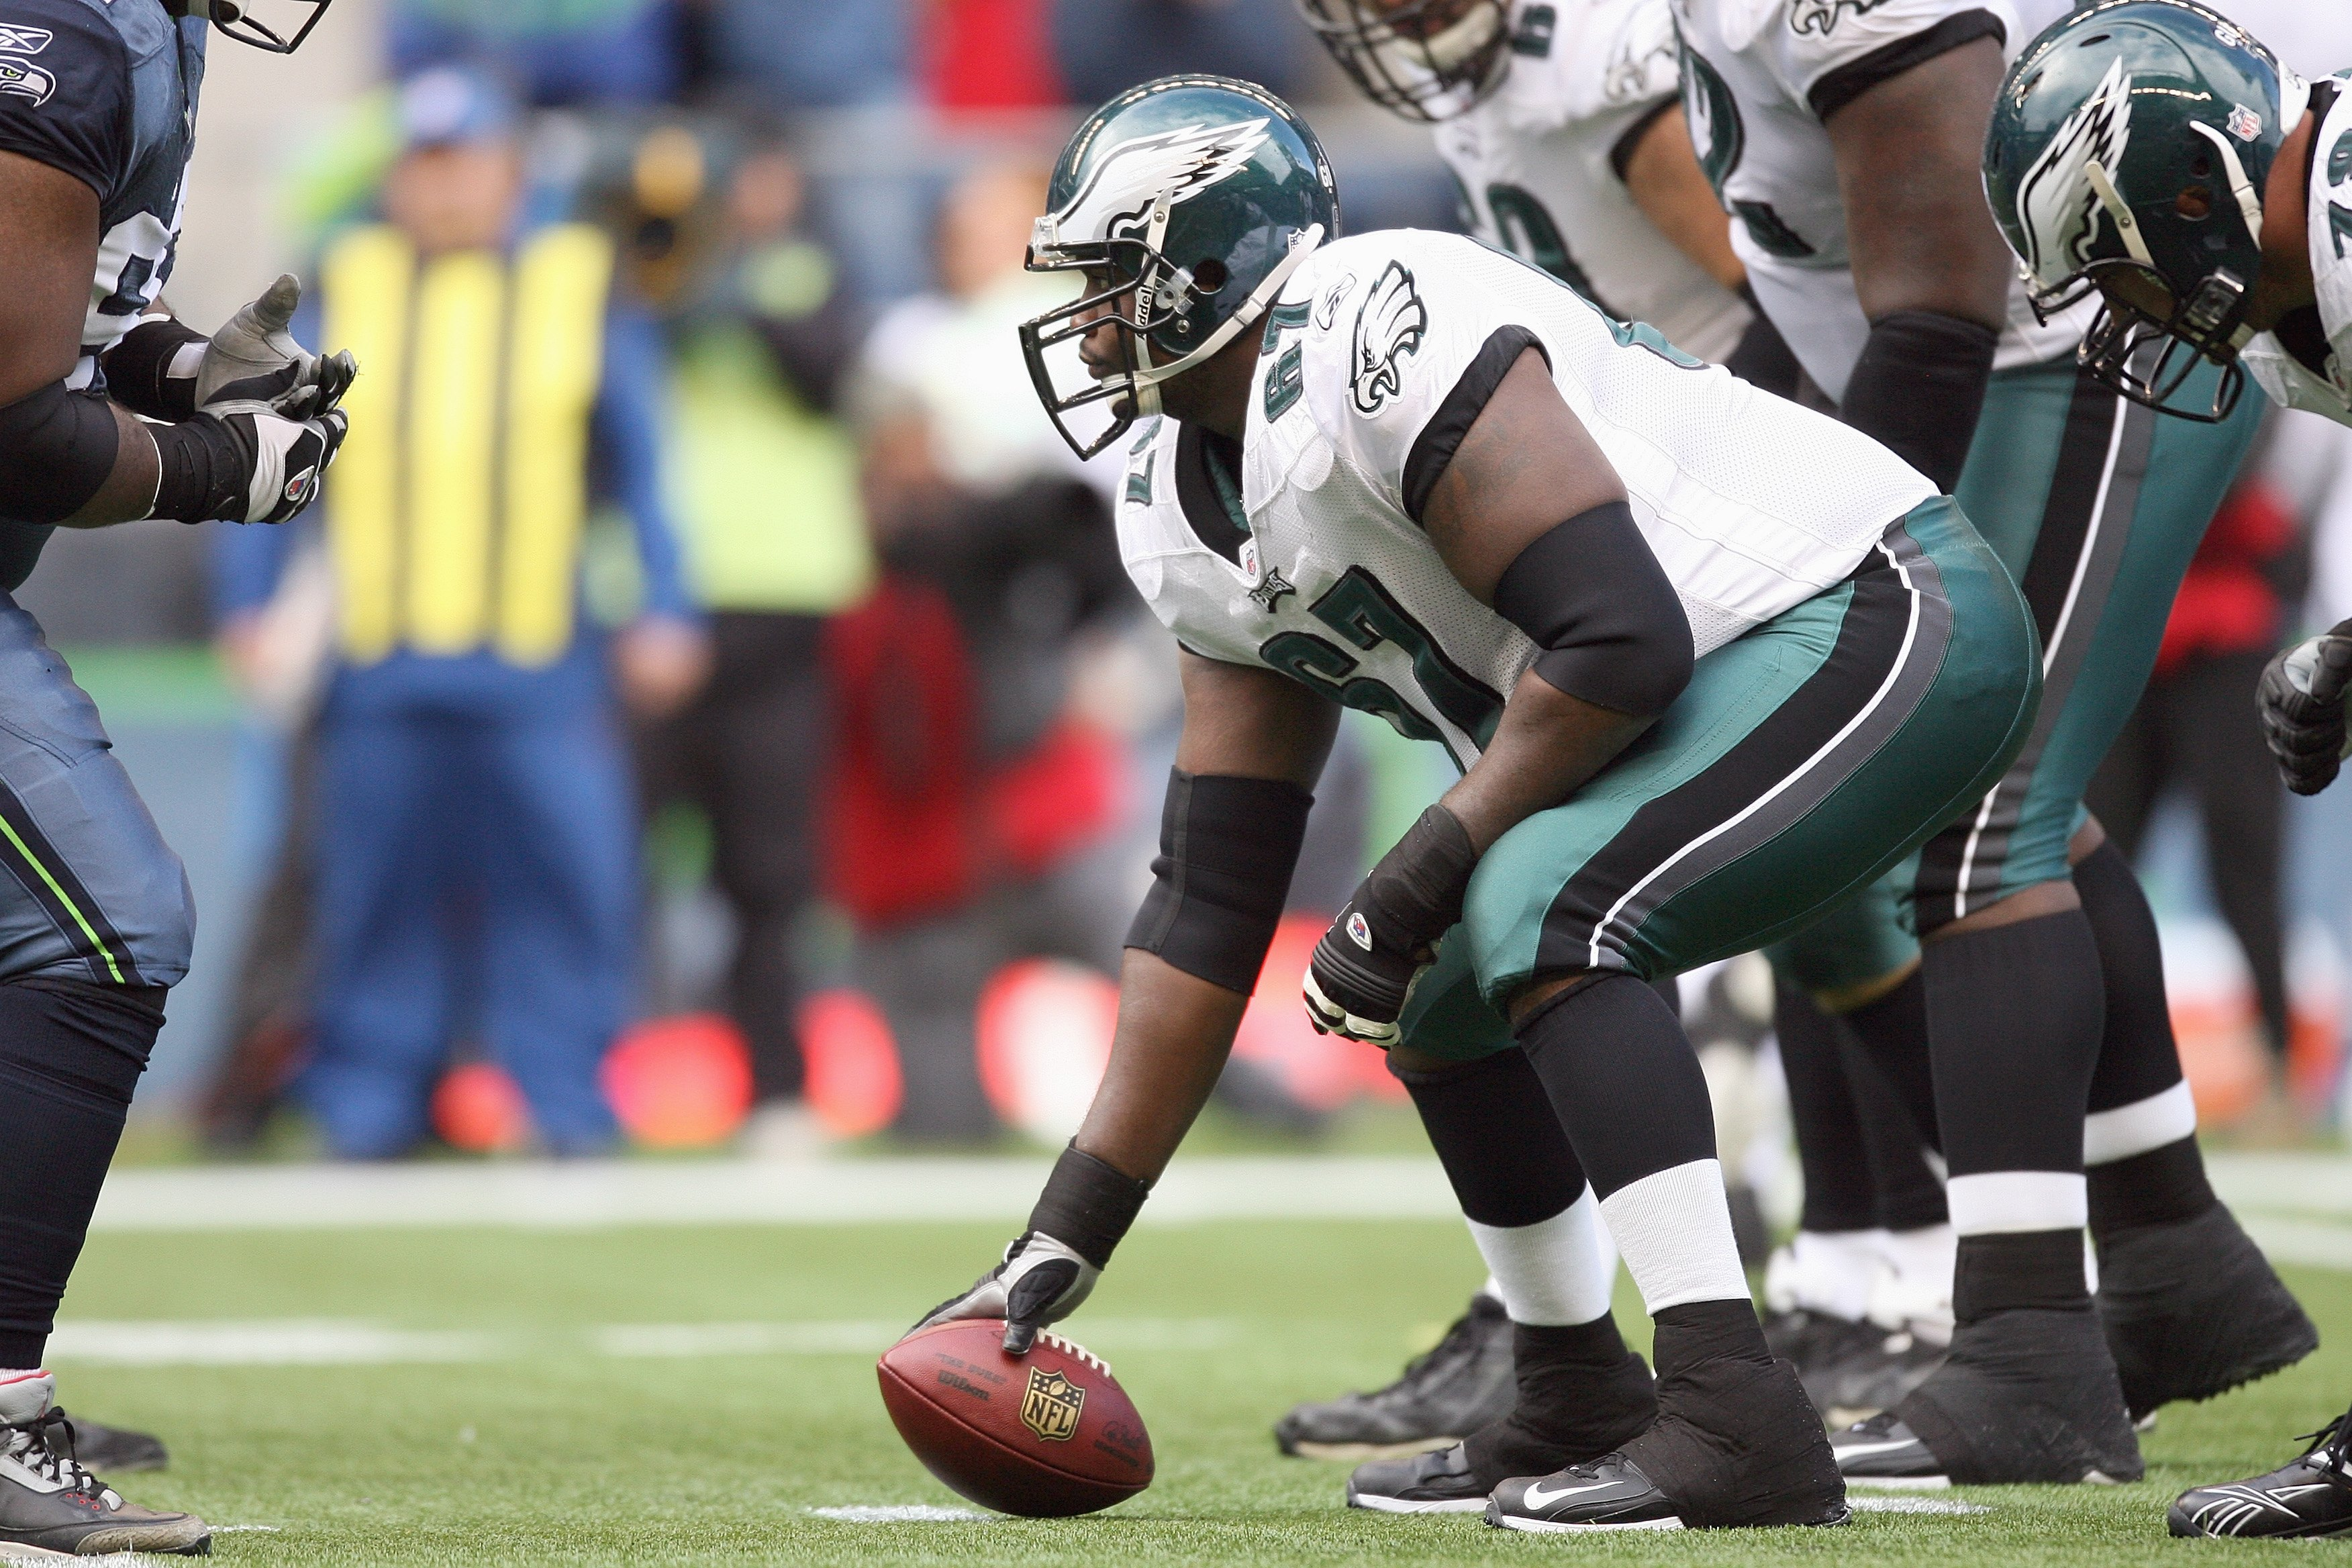 SEATTLE - NOVEMBER 02:  Jamaal Jackson #67 of the Philadelphia Eagles gets ready to hike the ball during the game against the Seattle Seahawks at Qwest Field on November 2, 2008 in Seattle, Washington. (Photo by Otto Greule Jr/Getty Images)